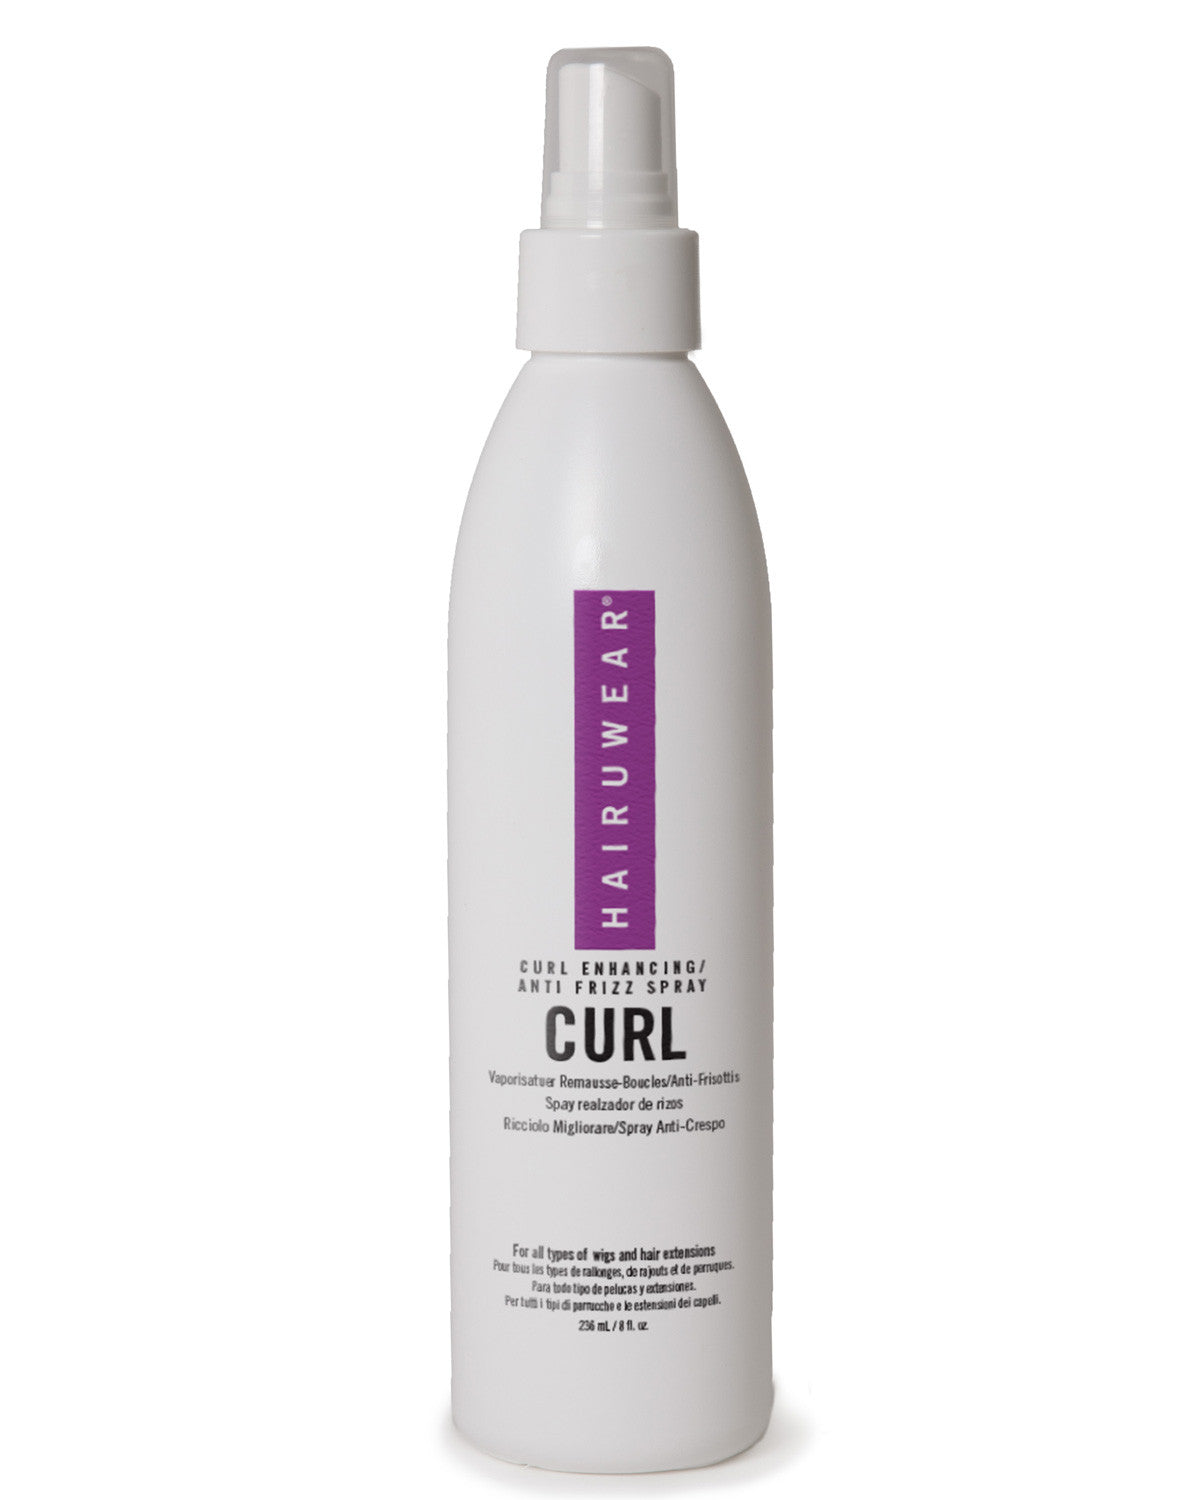 Curl - Enhancing Pump Spray